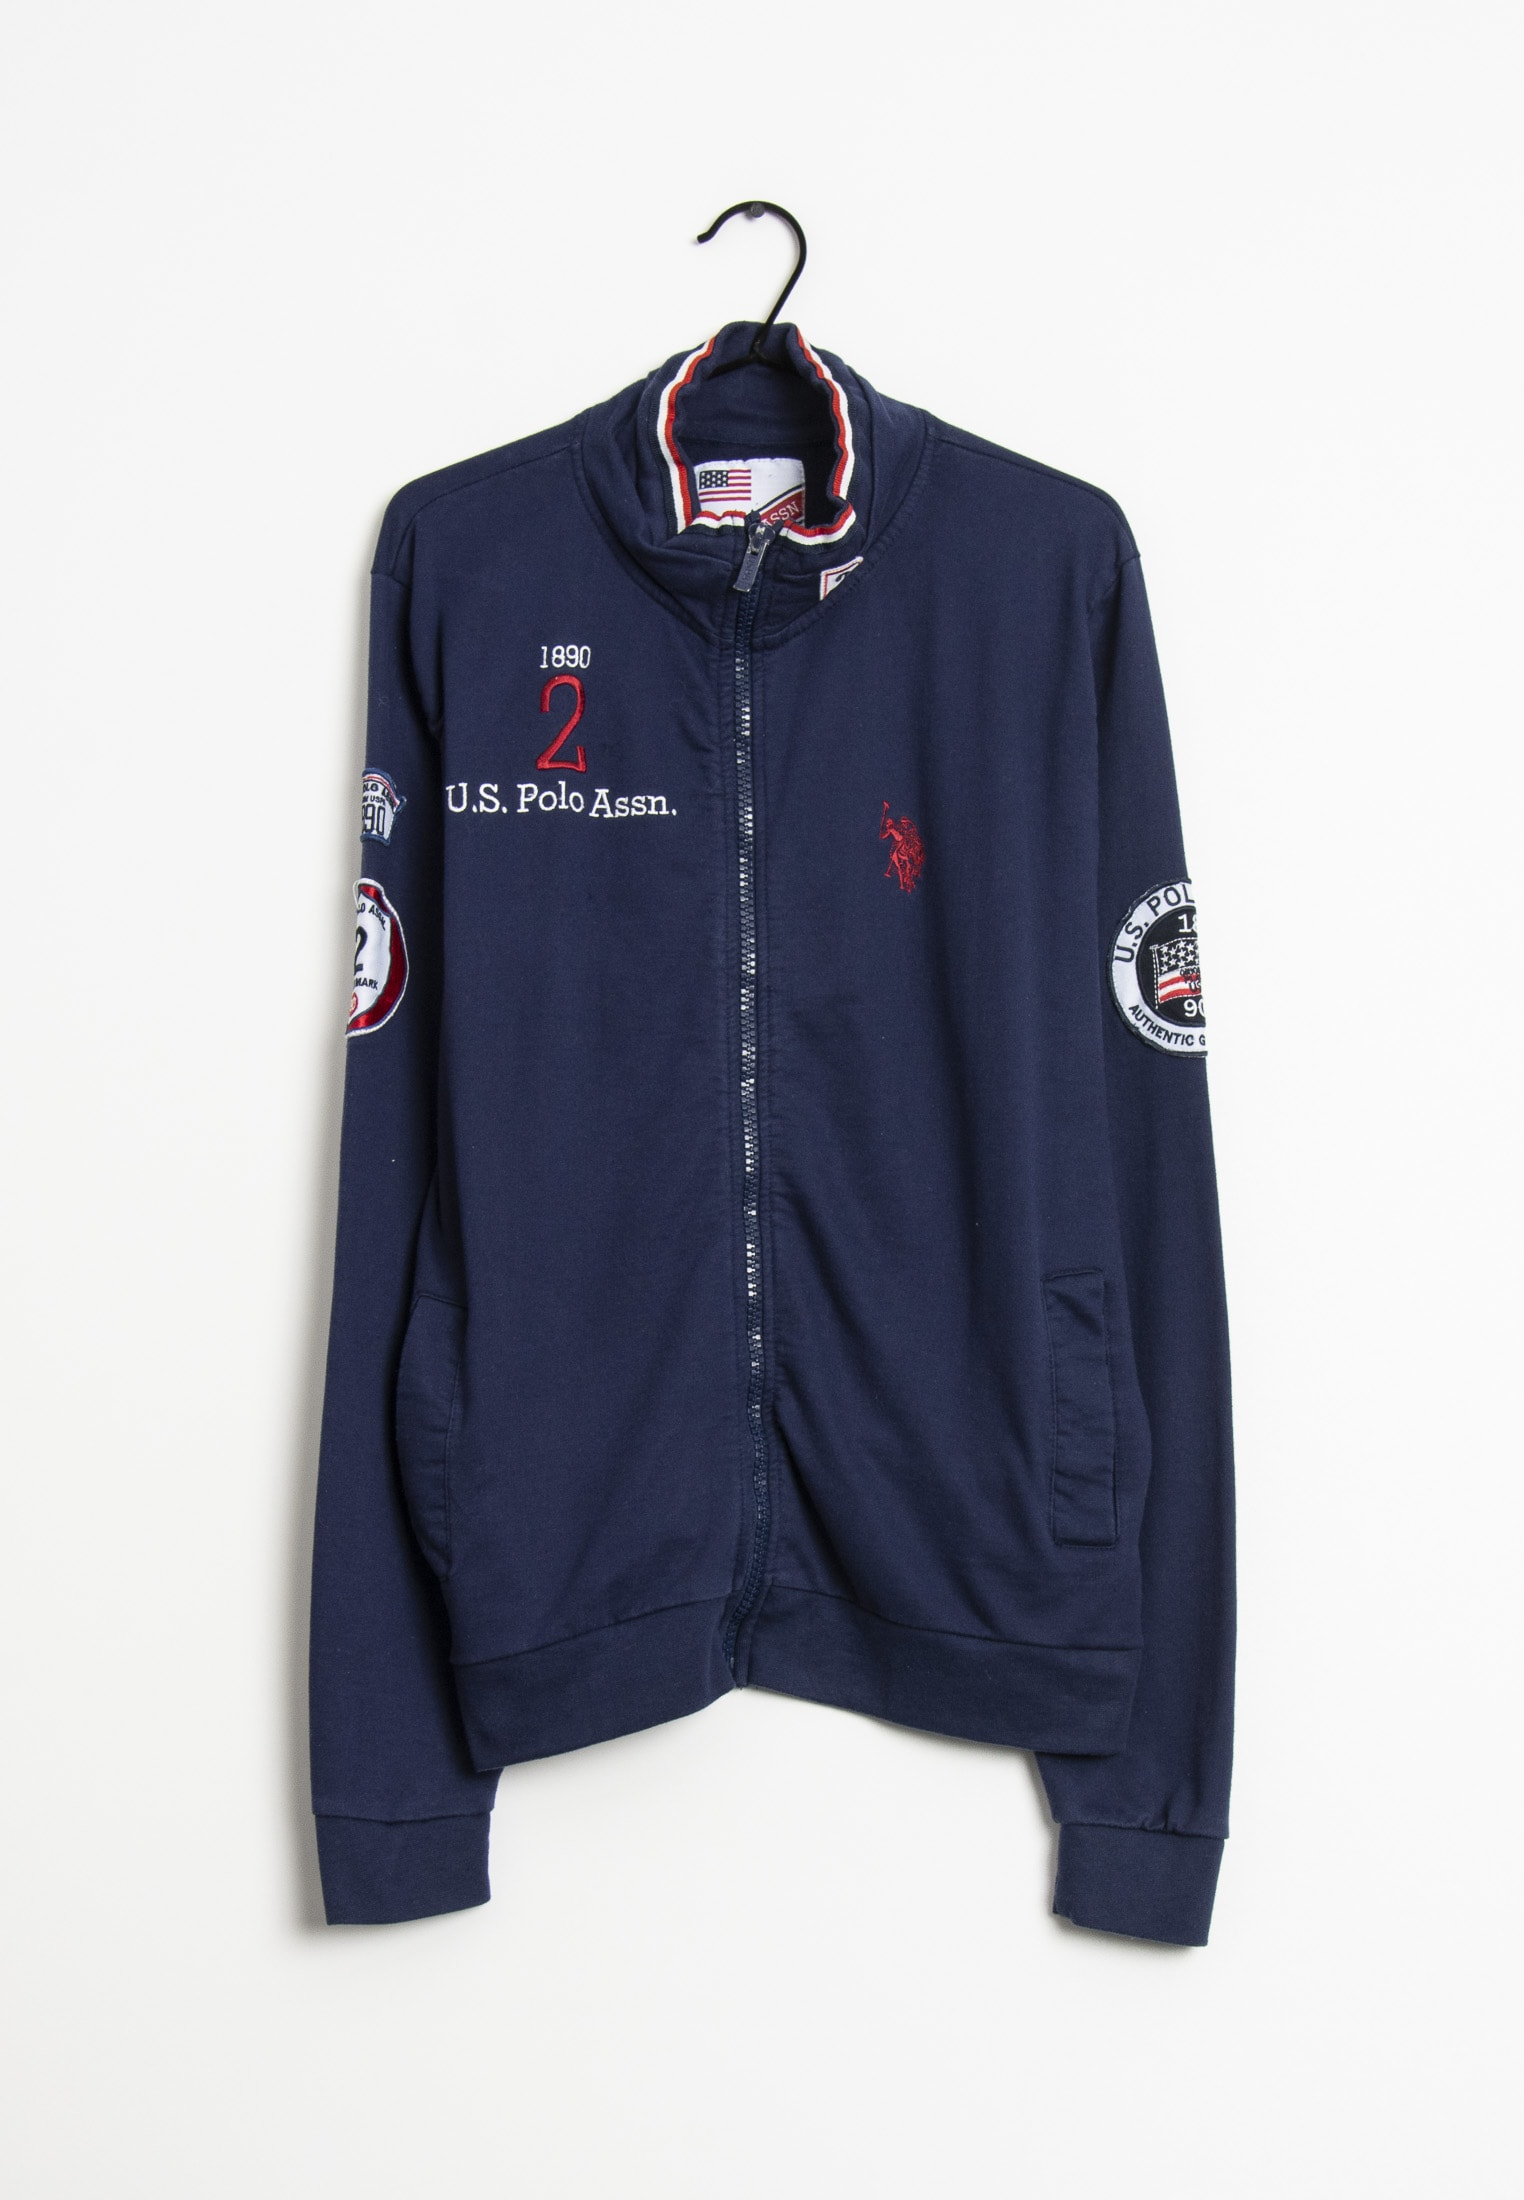 U.S. Polo Assn. Sweat / Fleece Blau Gr.XL